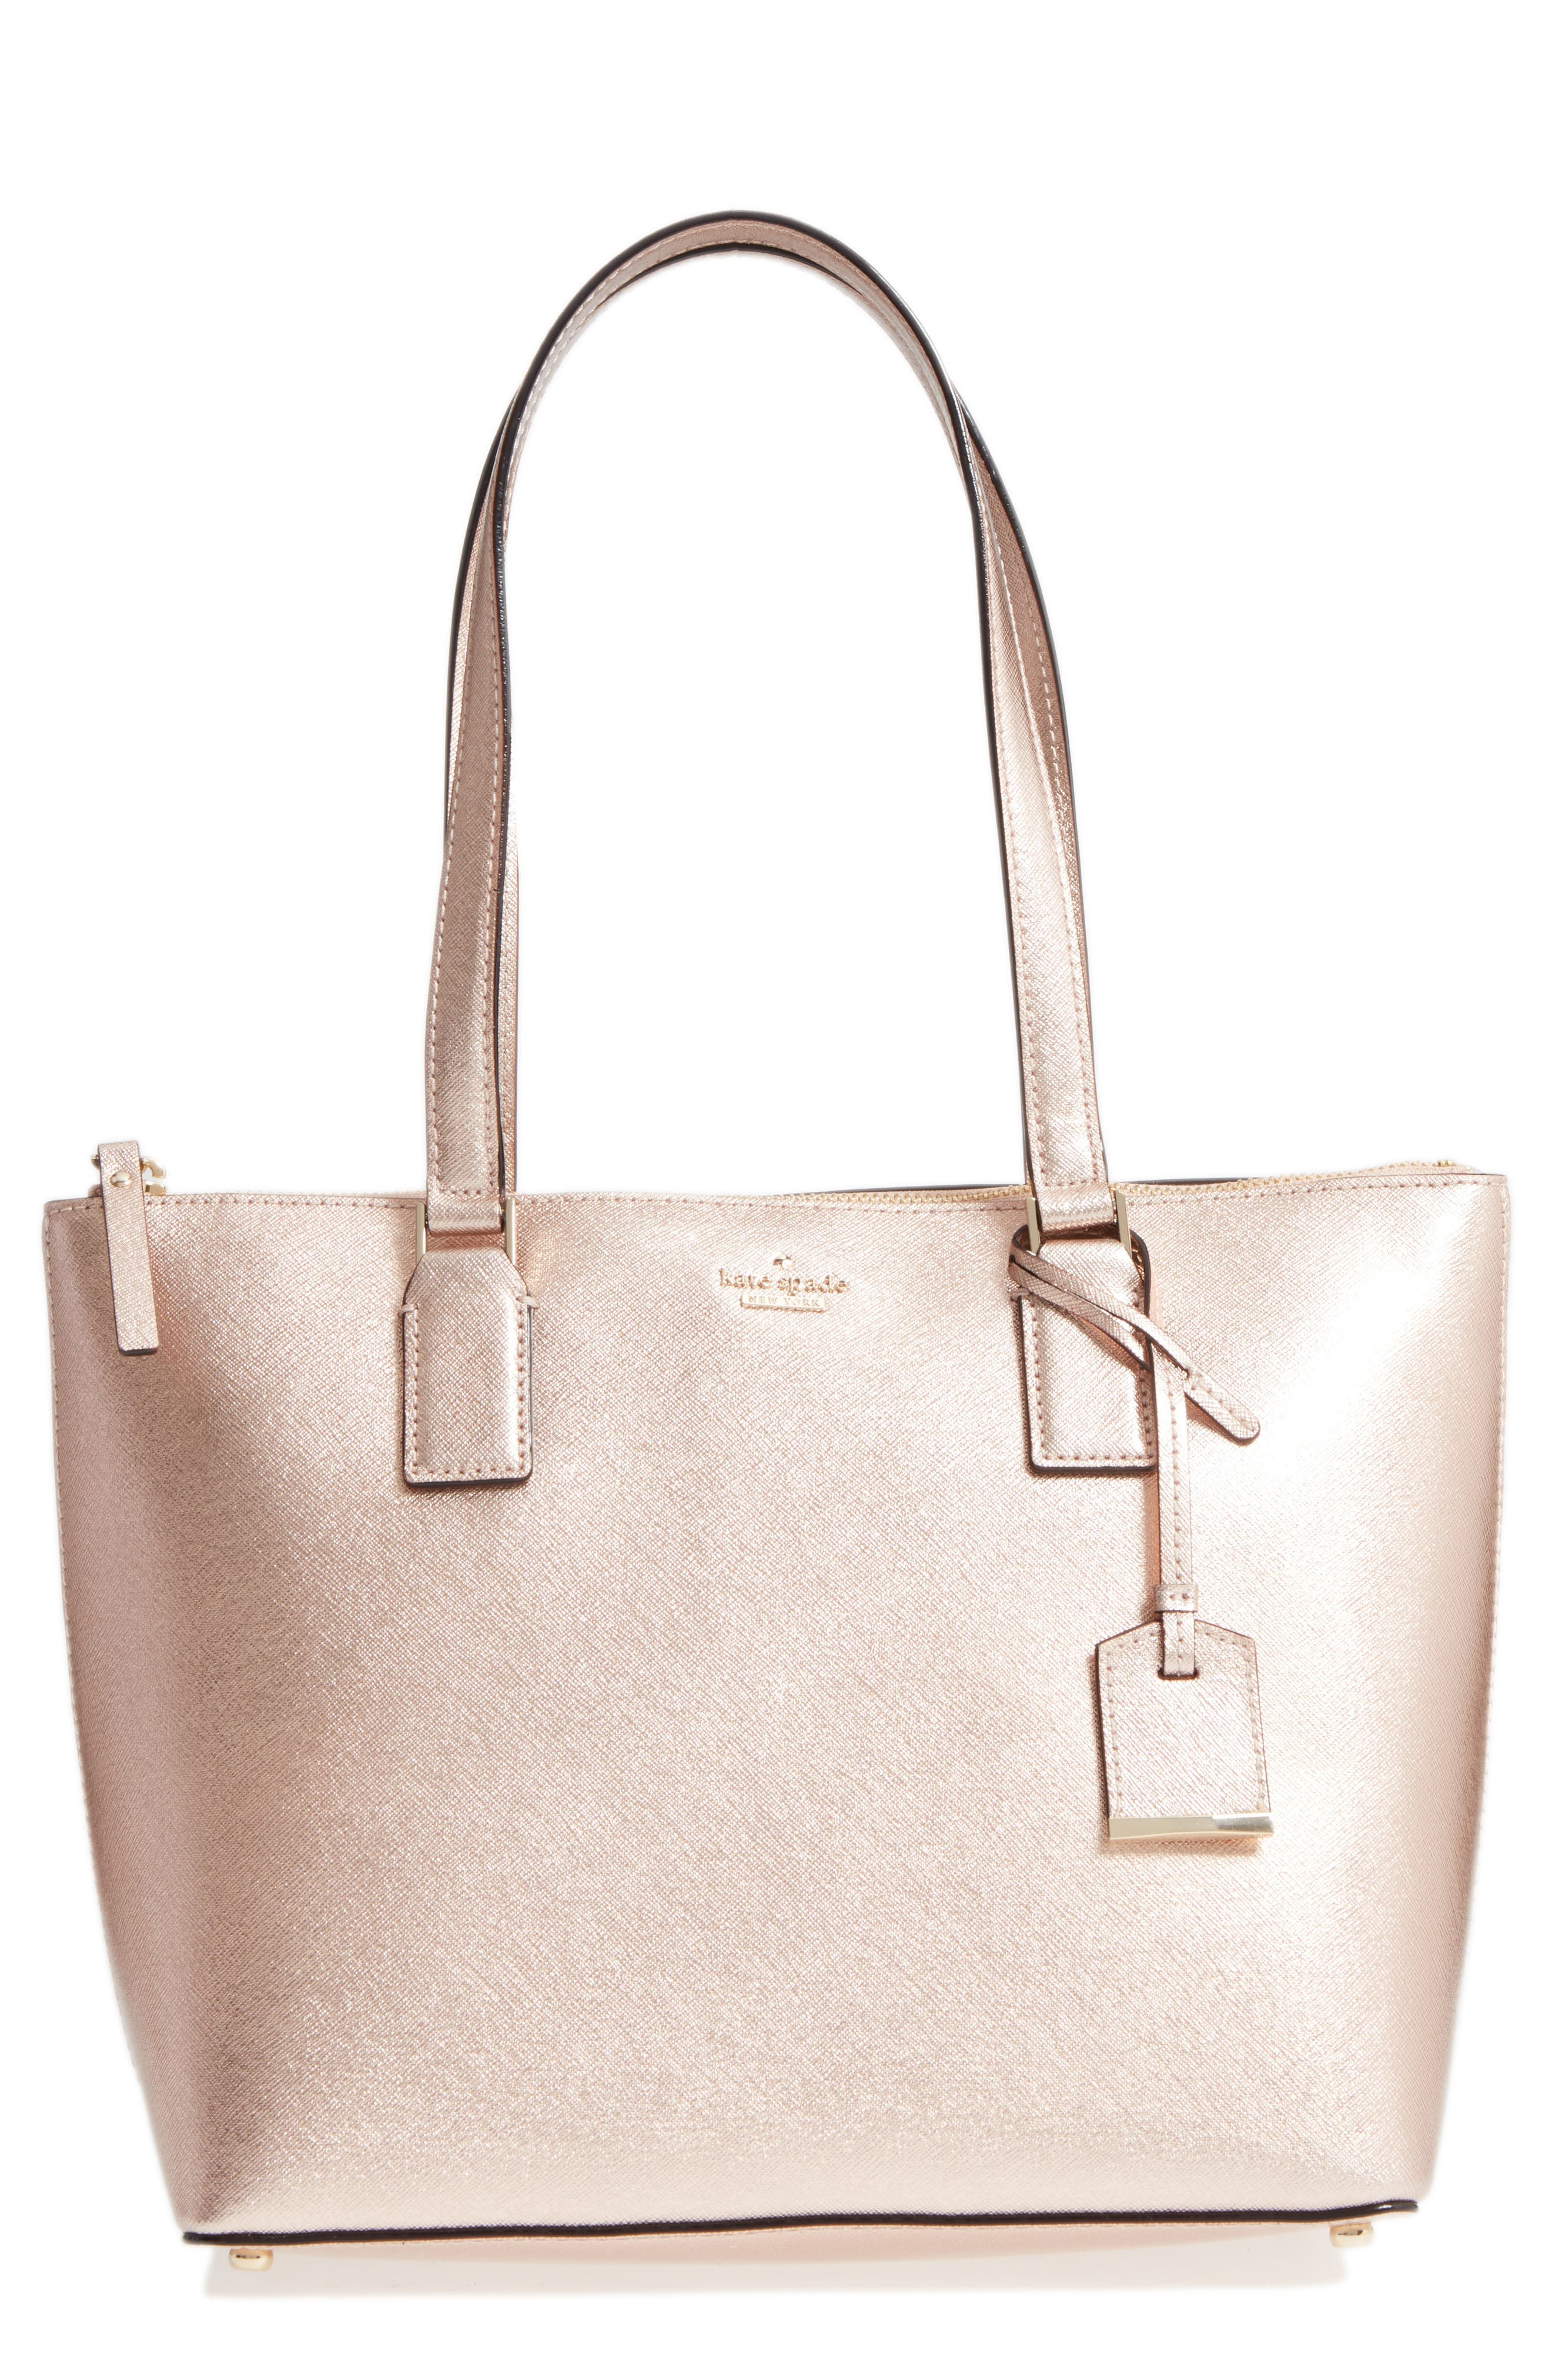 cameron street - small lucie leather tote,                             Main thumbnail 1, color,                             650